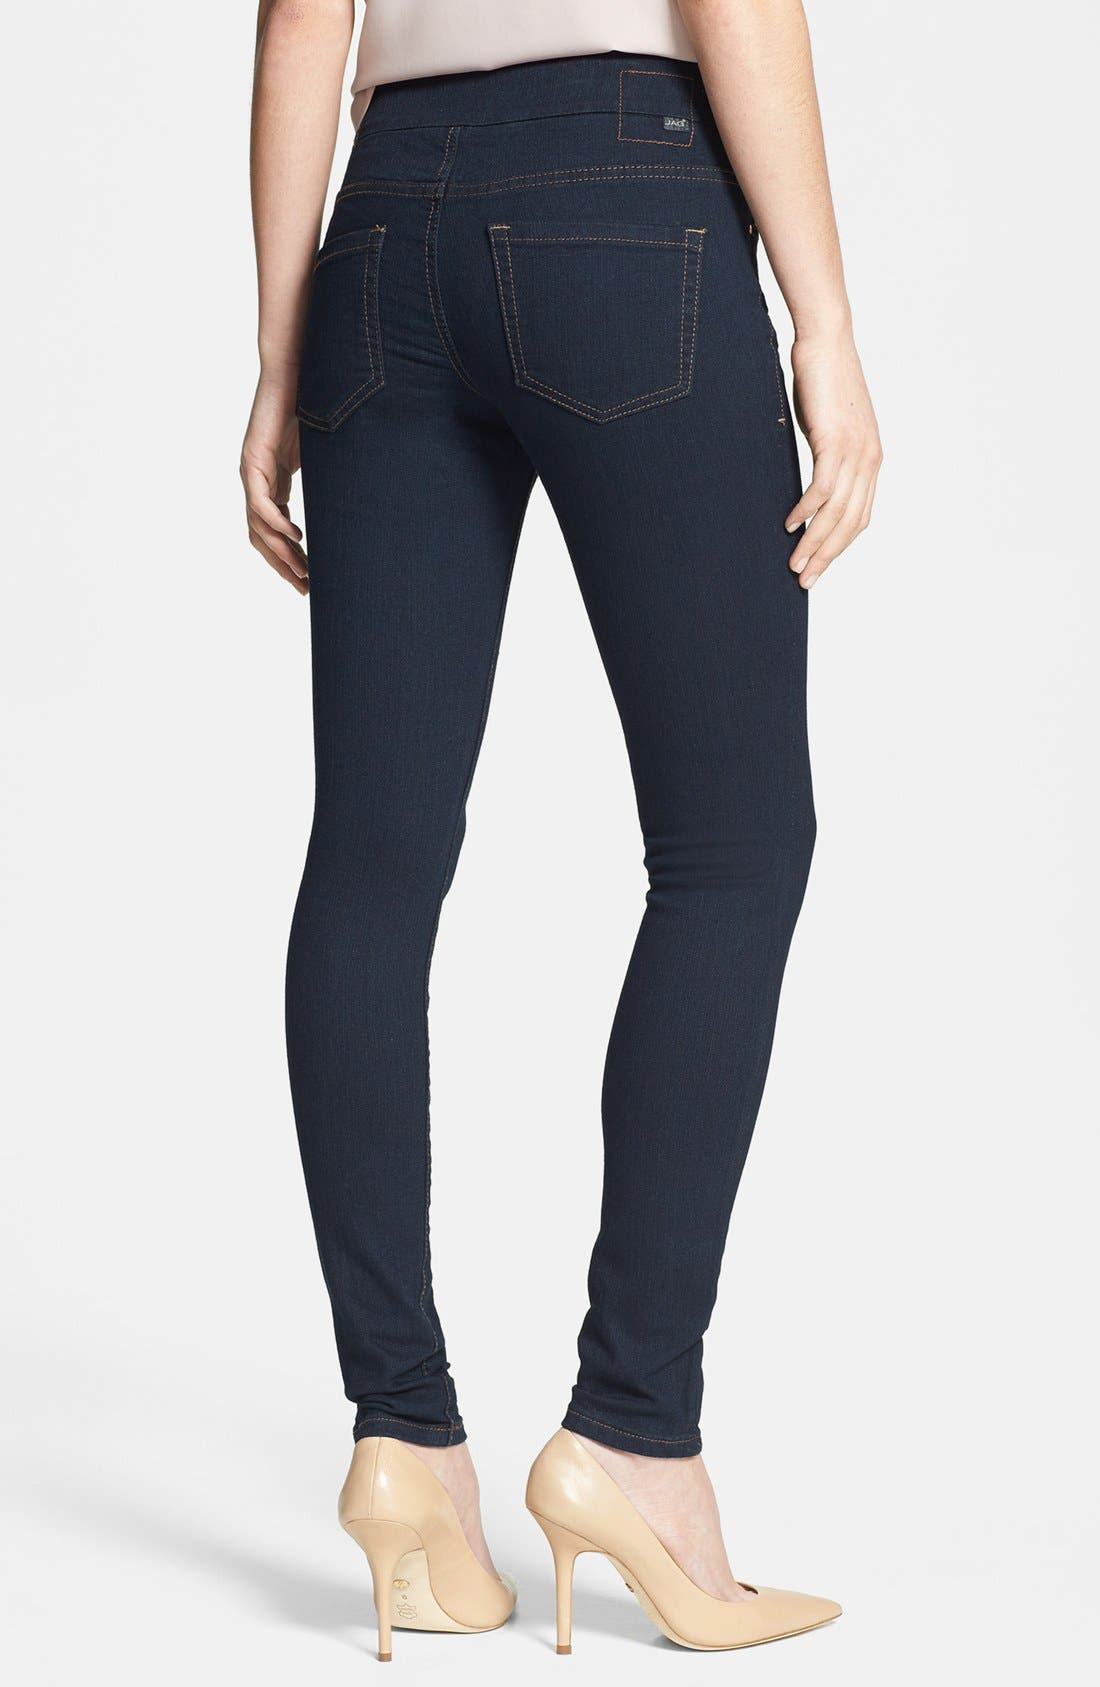 Alternate Image 3  - Jag Jeans 'Nora' Pull-On Skinny Stretch Jeans (After Midnight) (Regular & Petite)